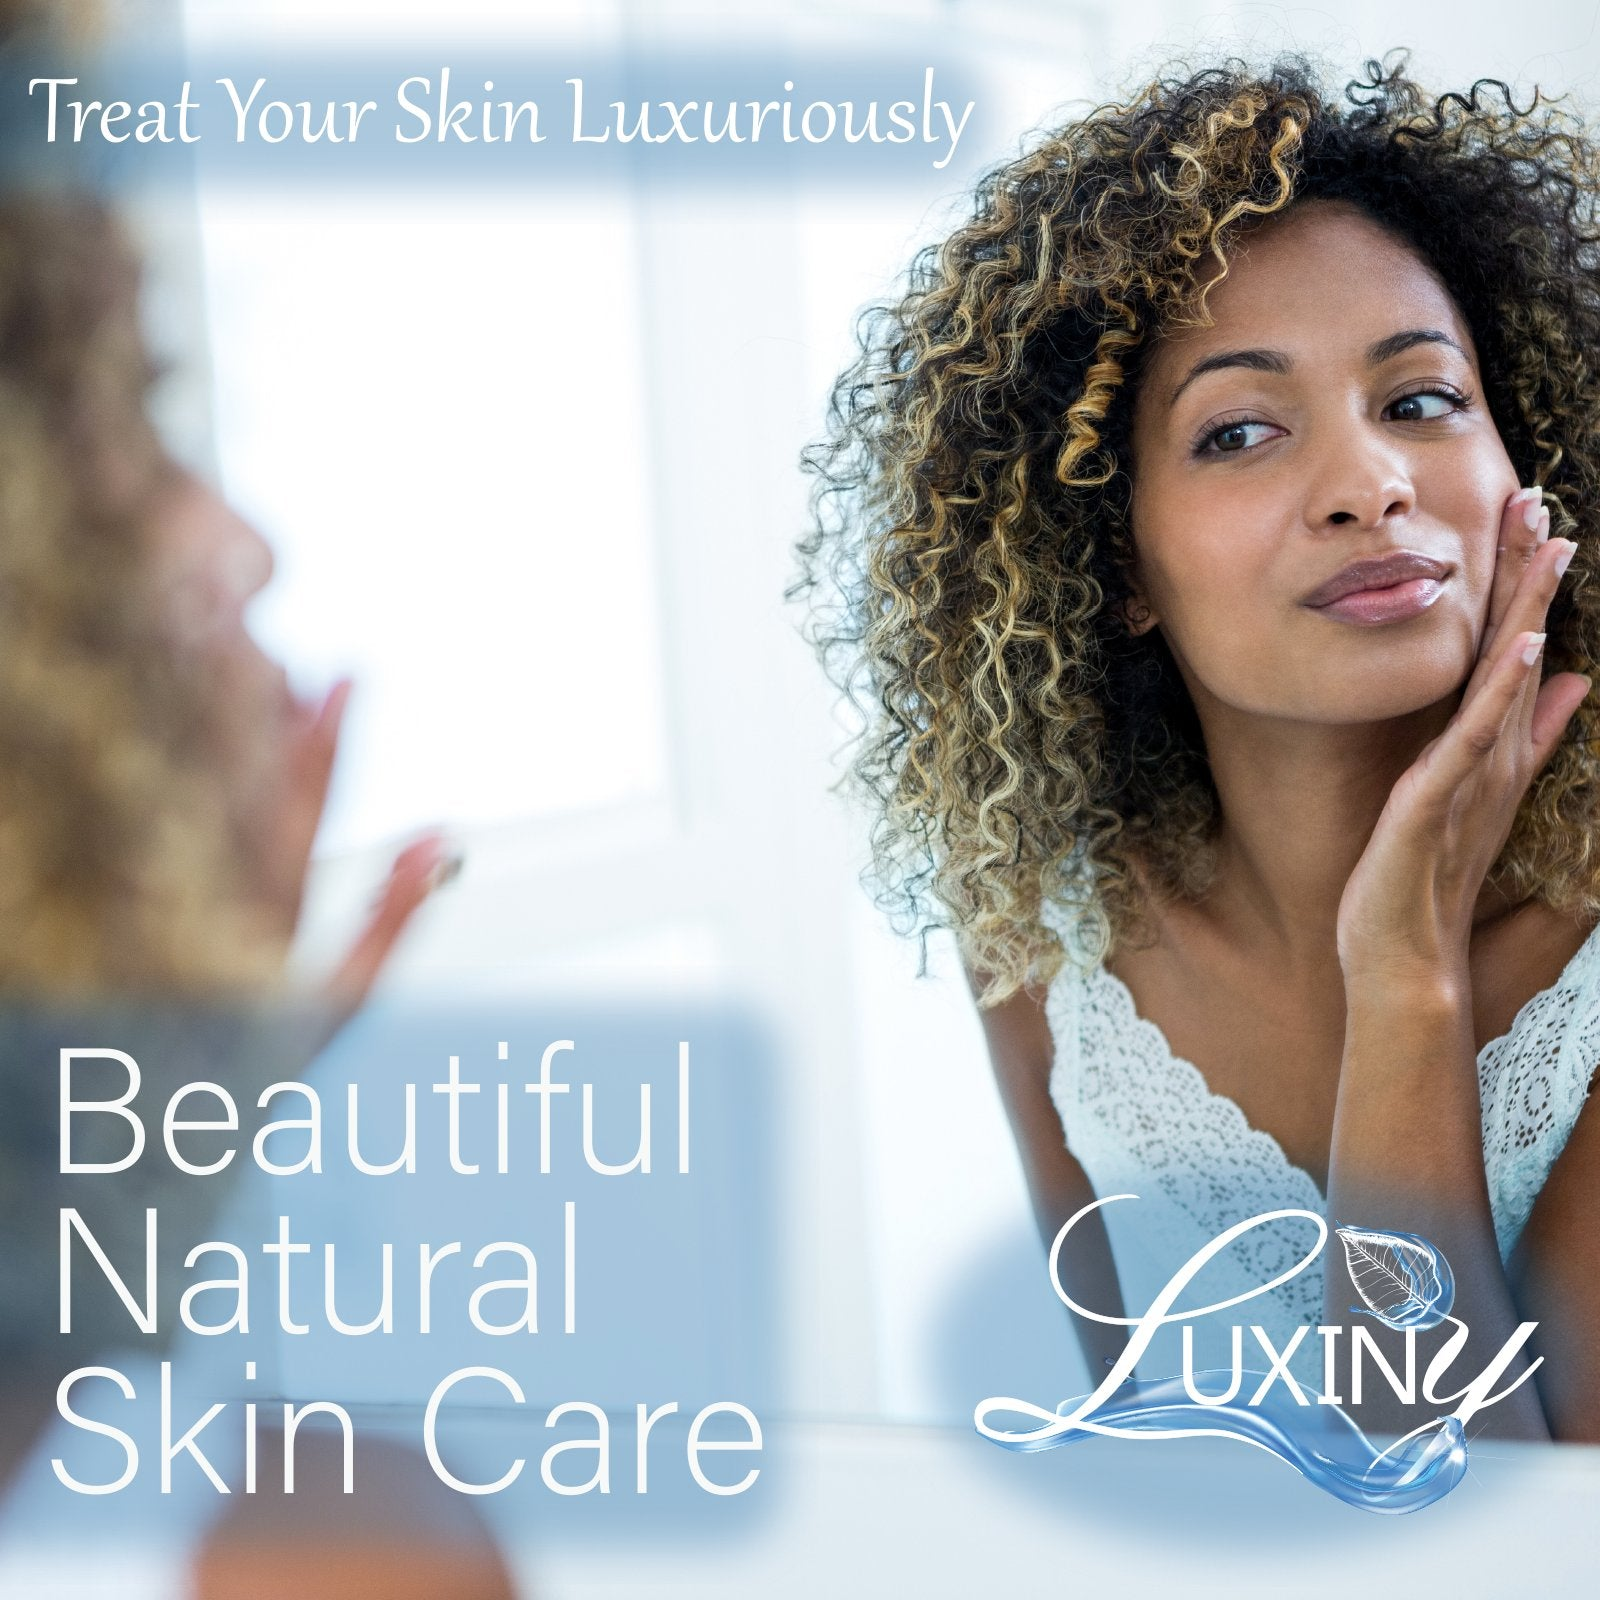 We value each customer individually by providing education, natural and safe products, and the promise of phenomenal customer service. We extend our warm welcome for you to join the Luxiny family.